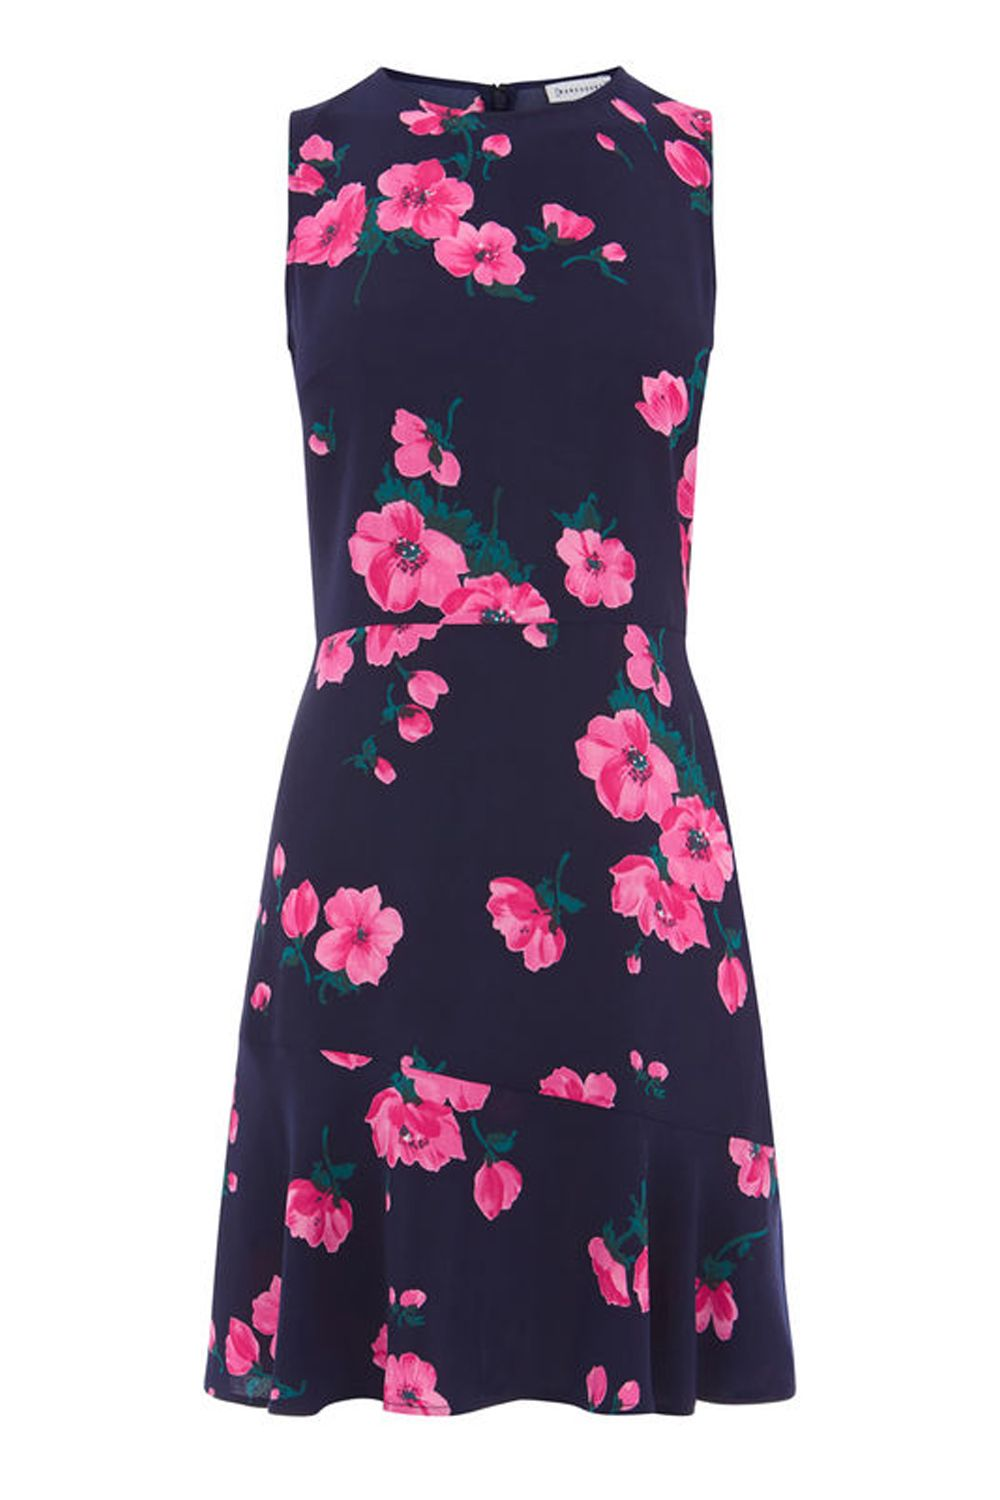 Warehouse Delia Print Dress, Multi-Coloured